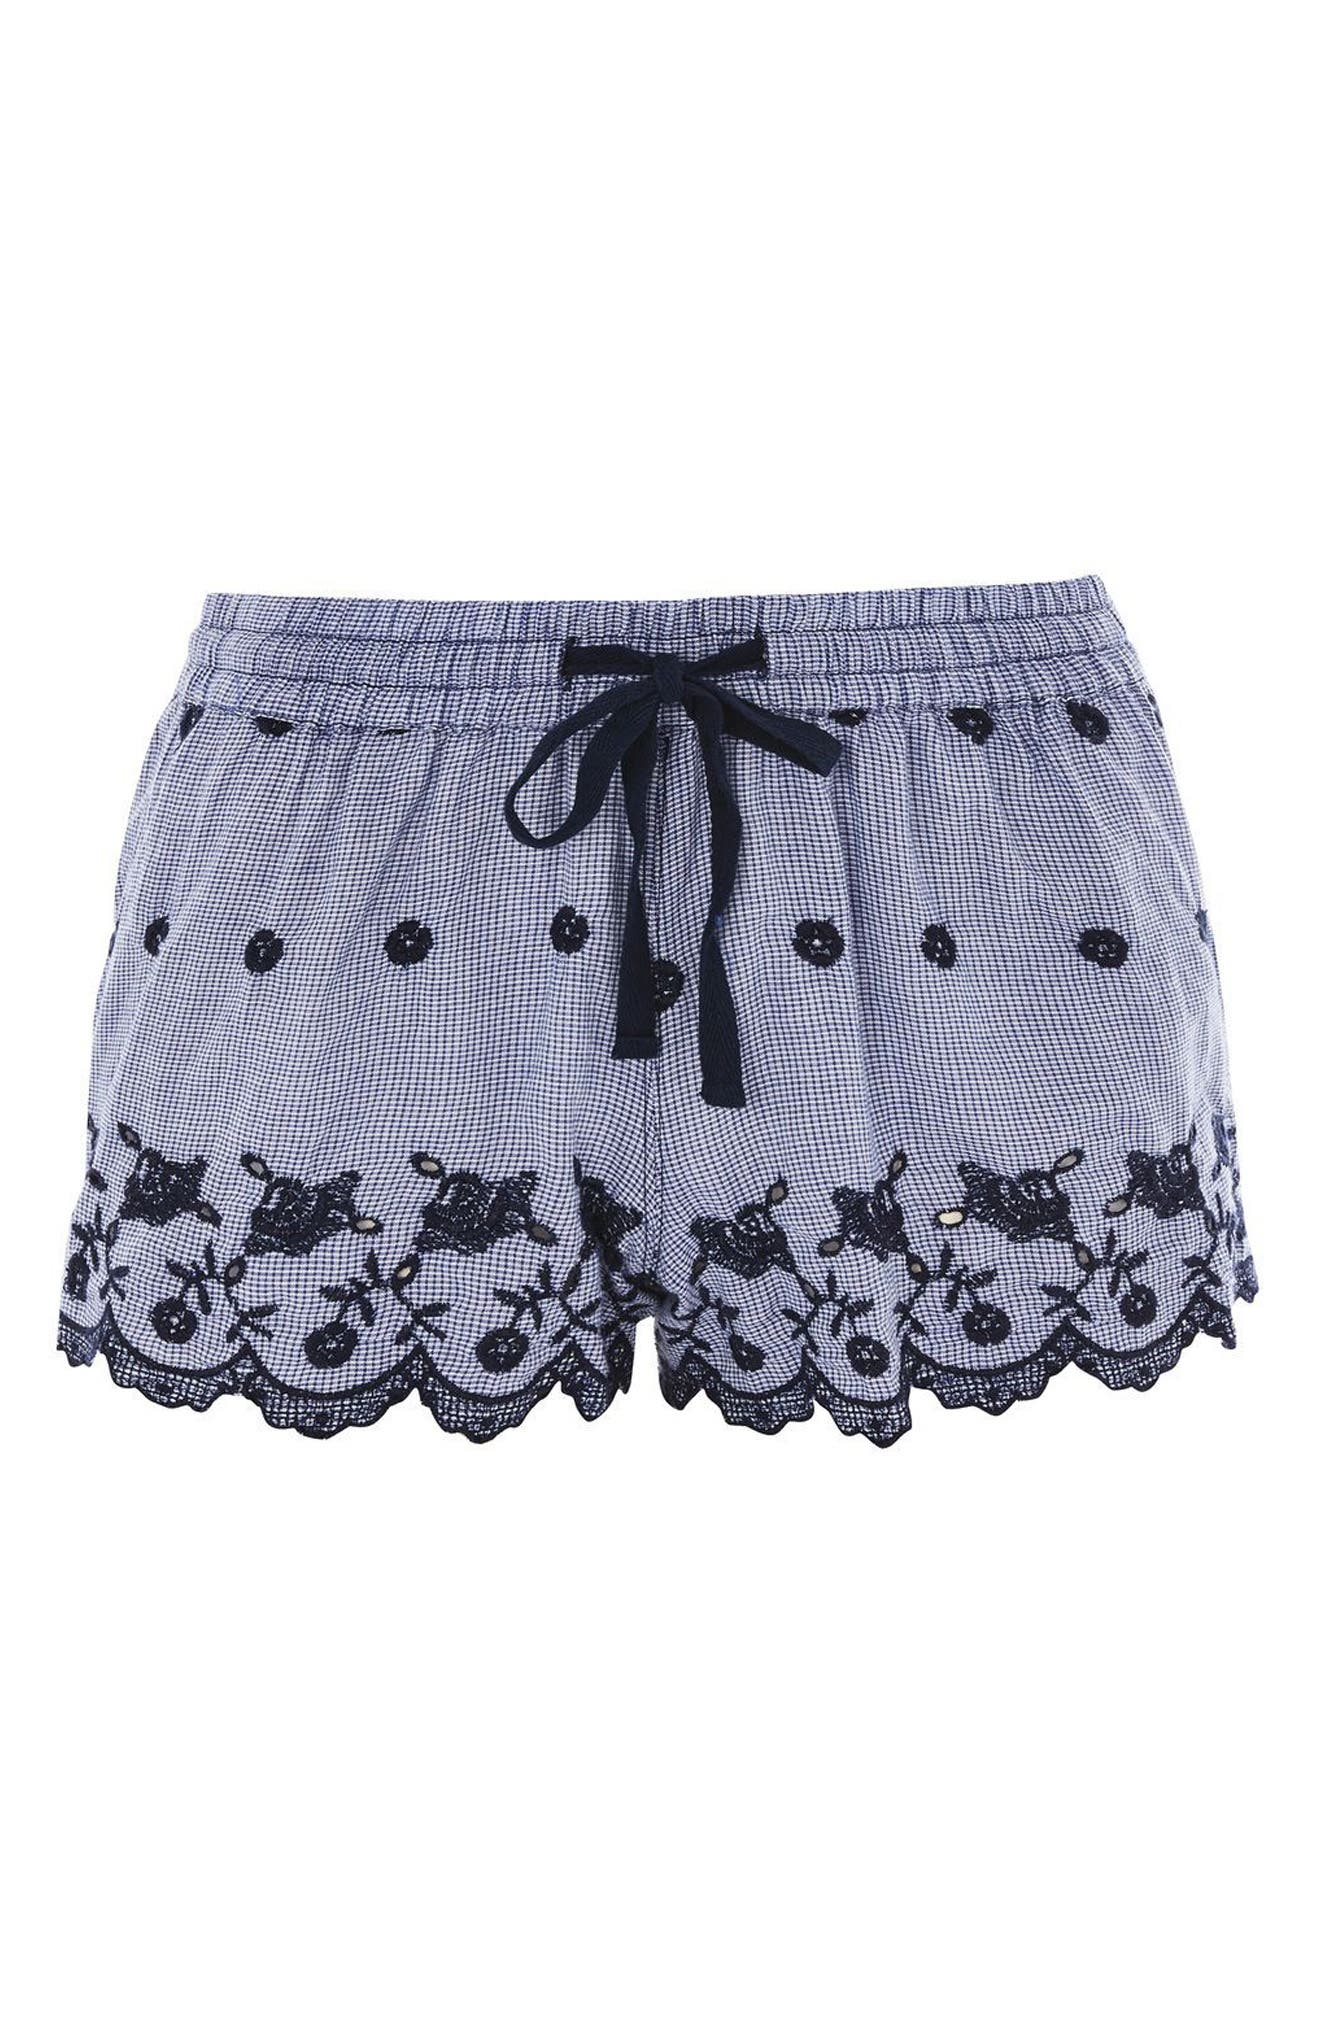 Topshop Cotton Gingham Pajama Shorts